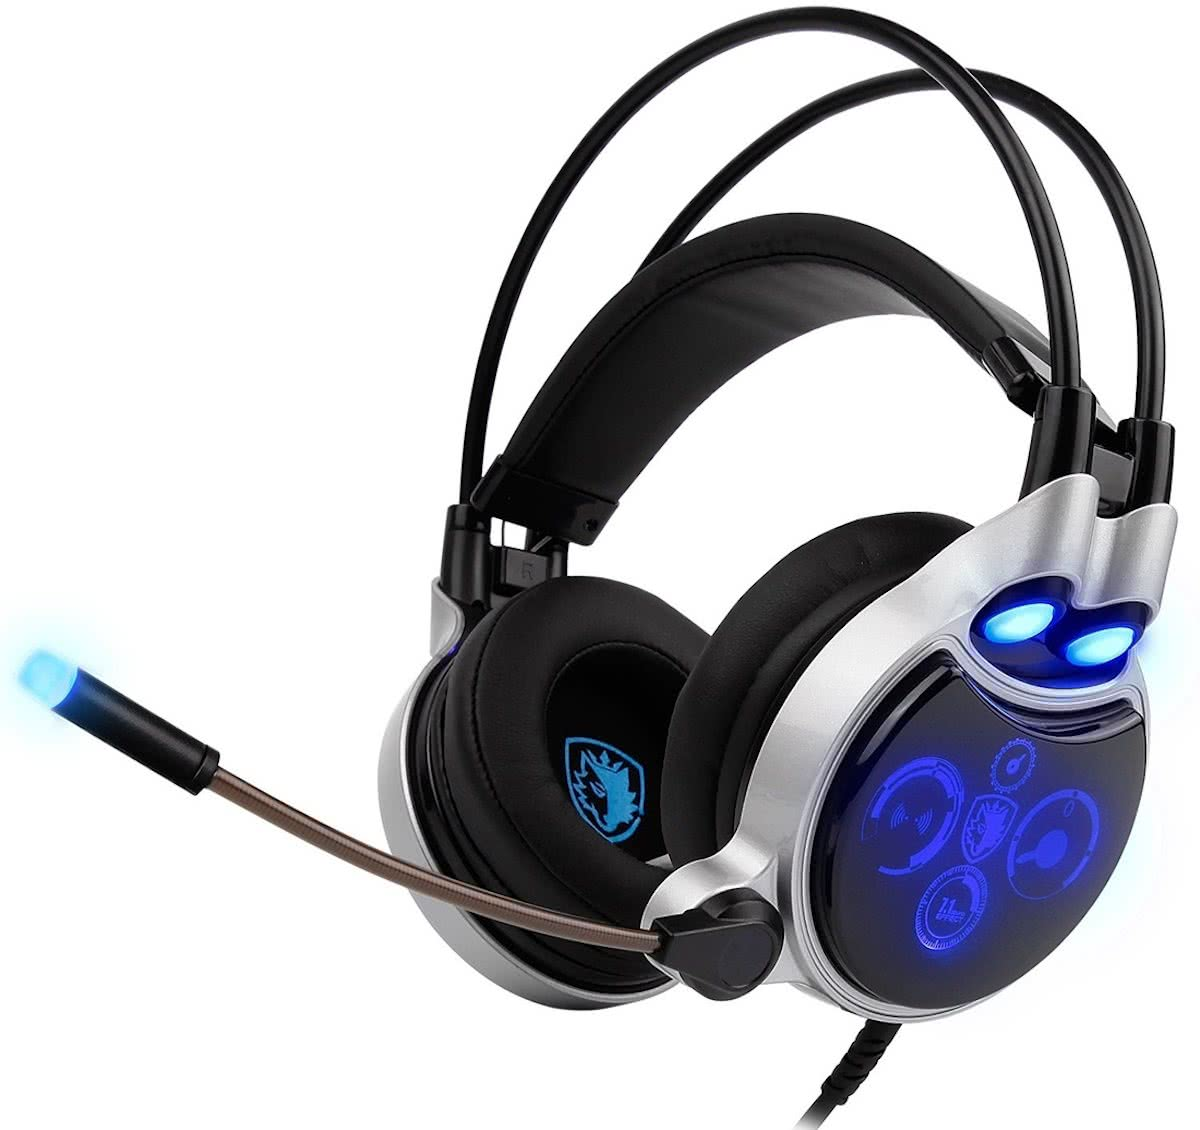 SADES R8 USB Gaming Headset 7.1 Channel Wired hoofdtelefoon met Wire Control + Mic + licht voor PC, Laptop (Black+zilver)